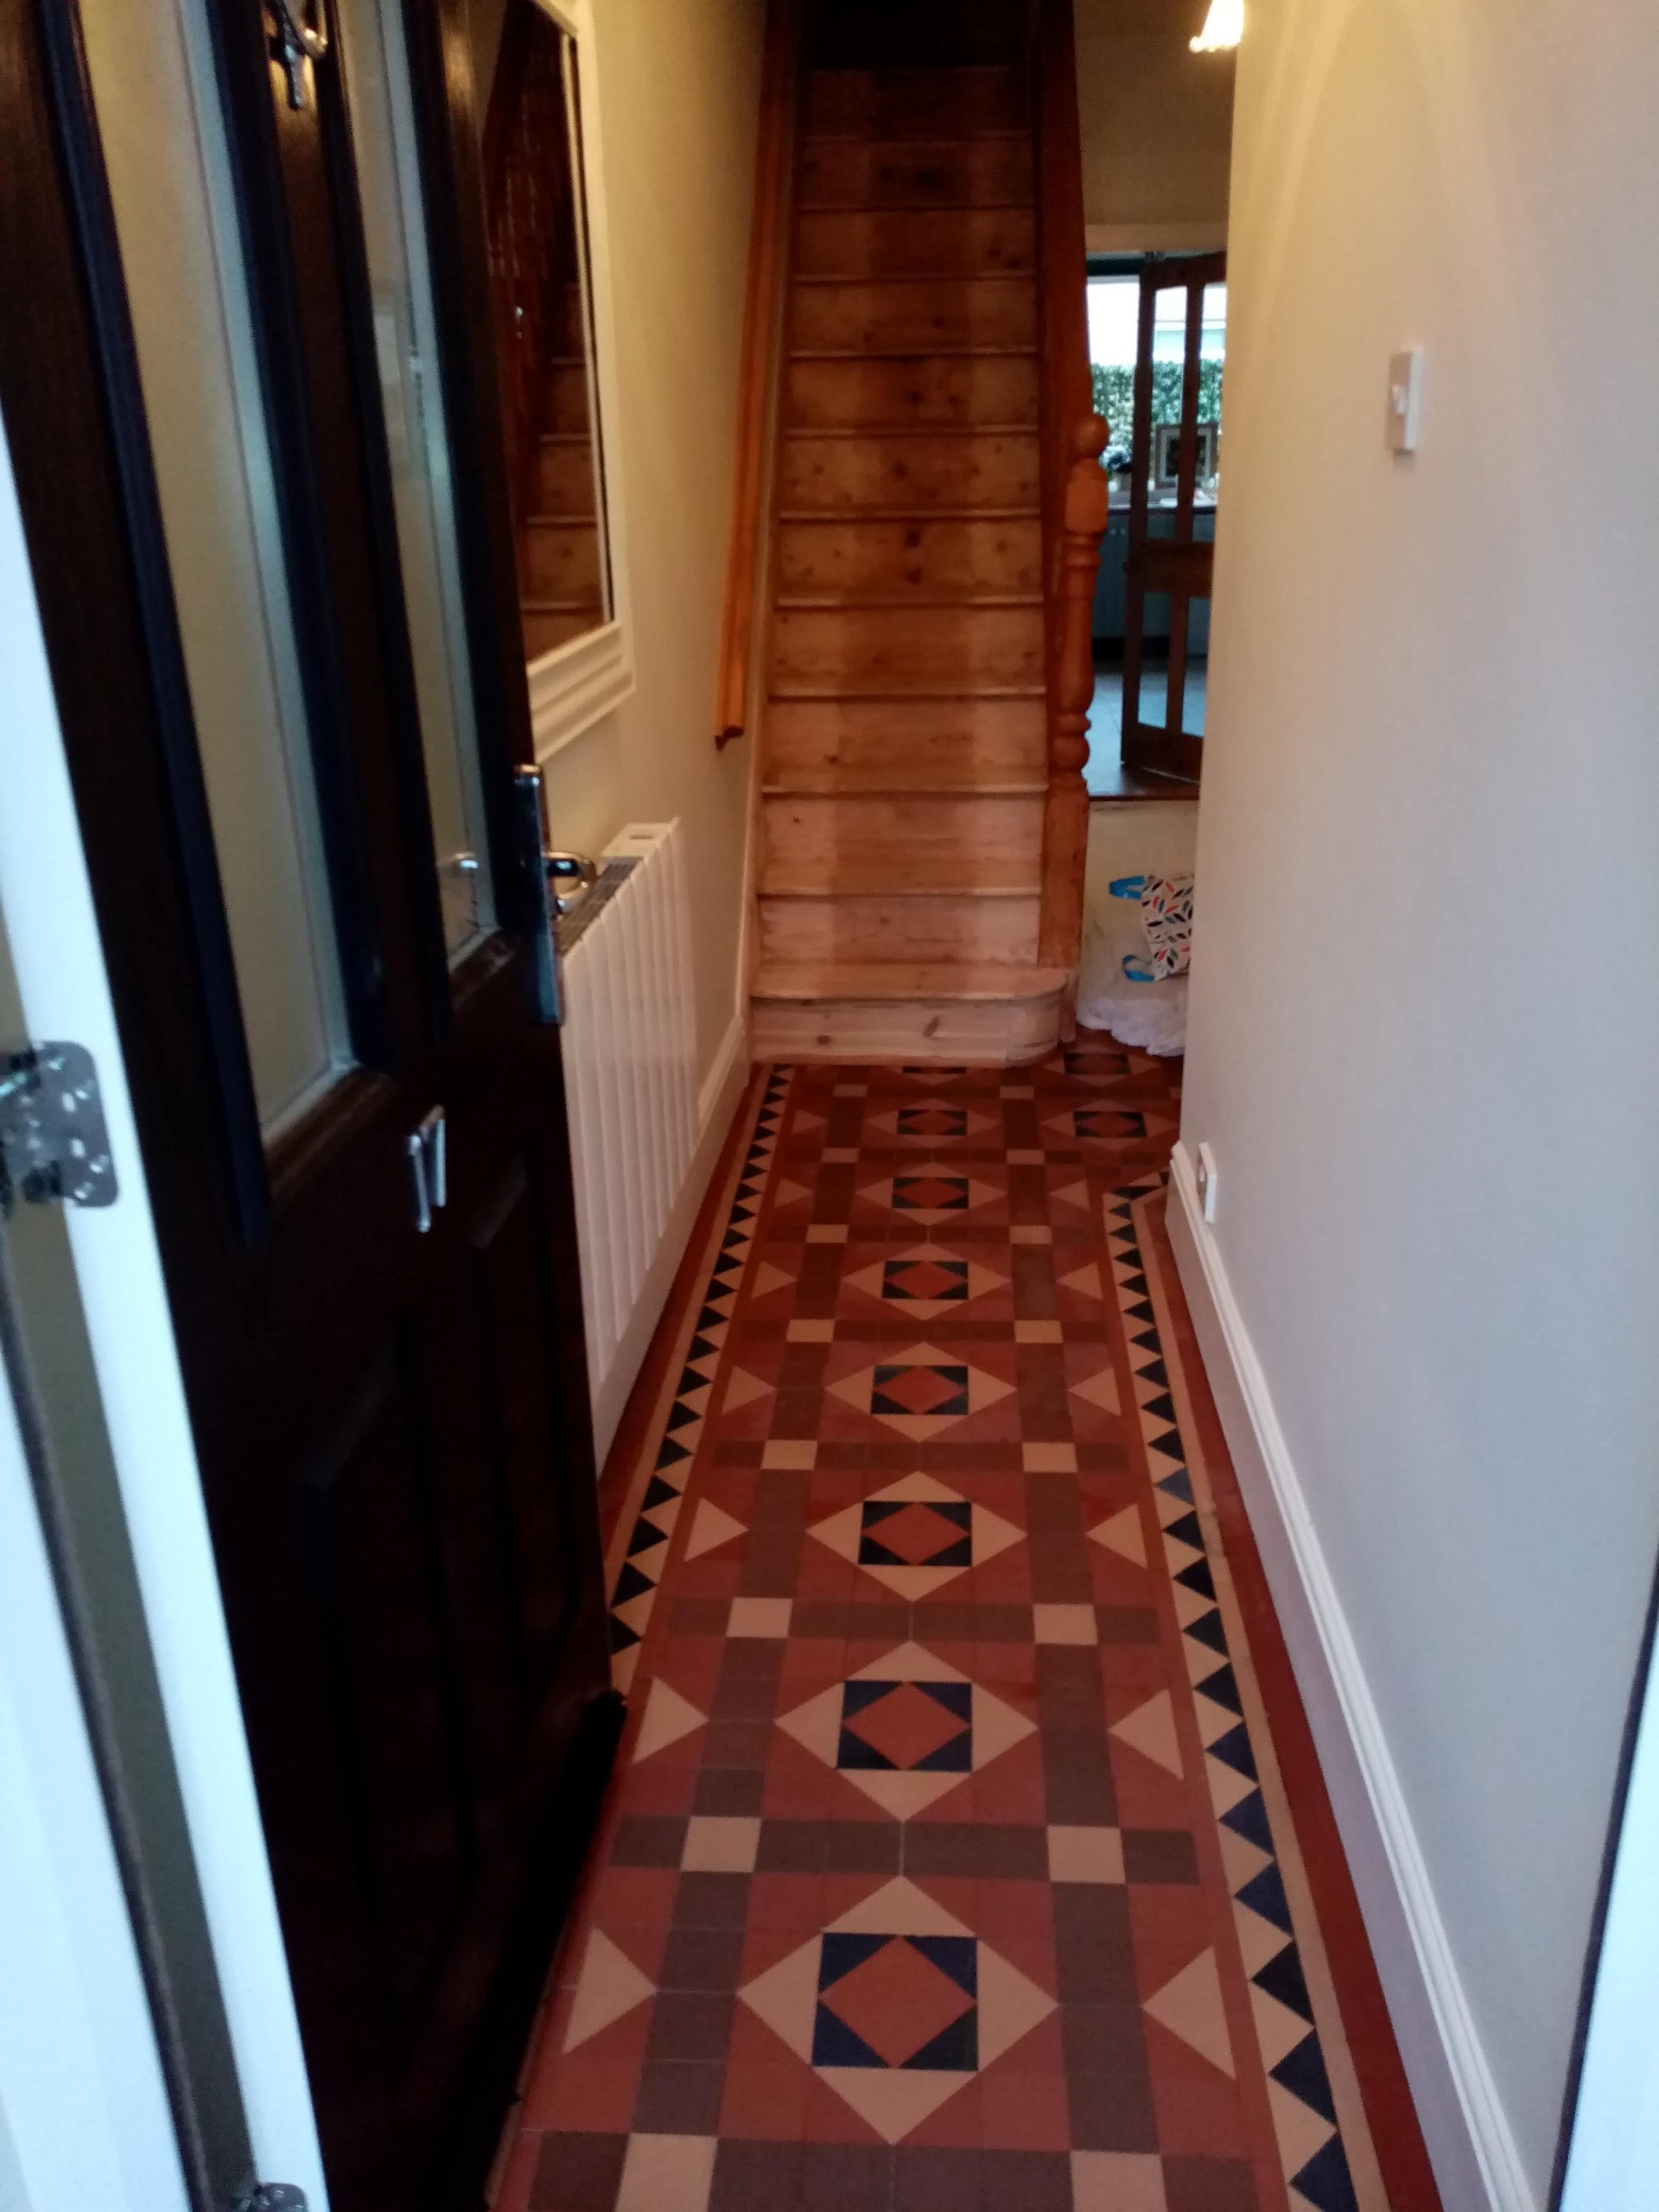 Victorian Tiled Hallway Floor After Repair Nailsworth